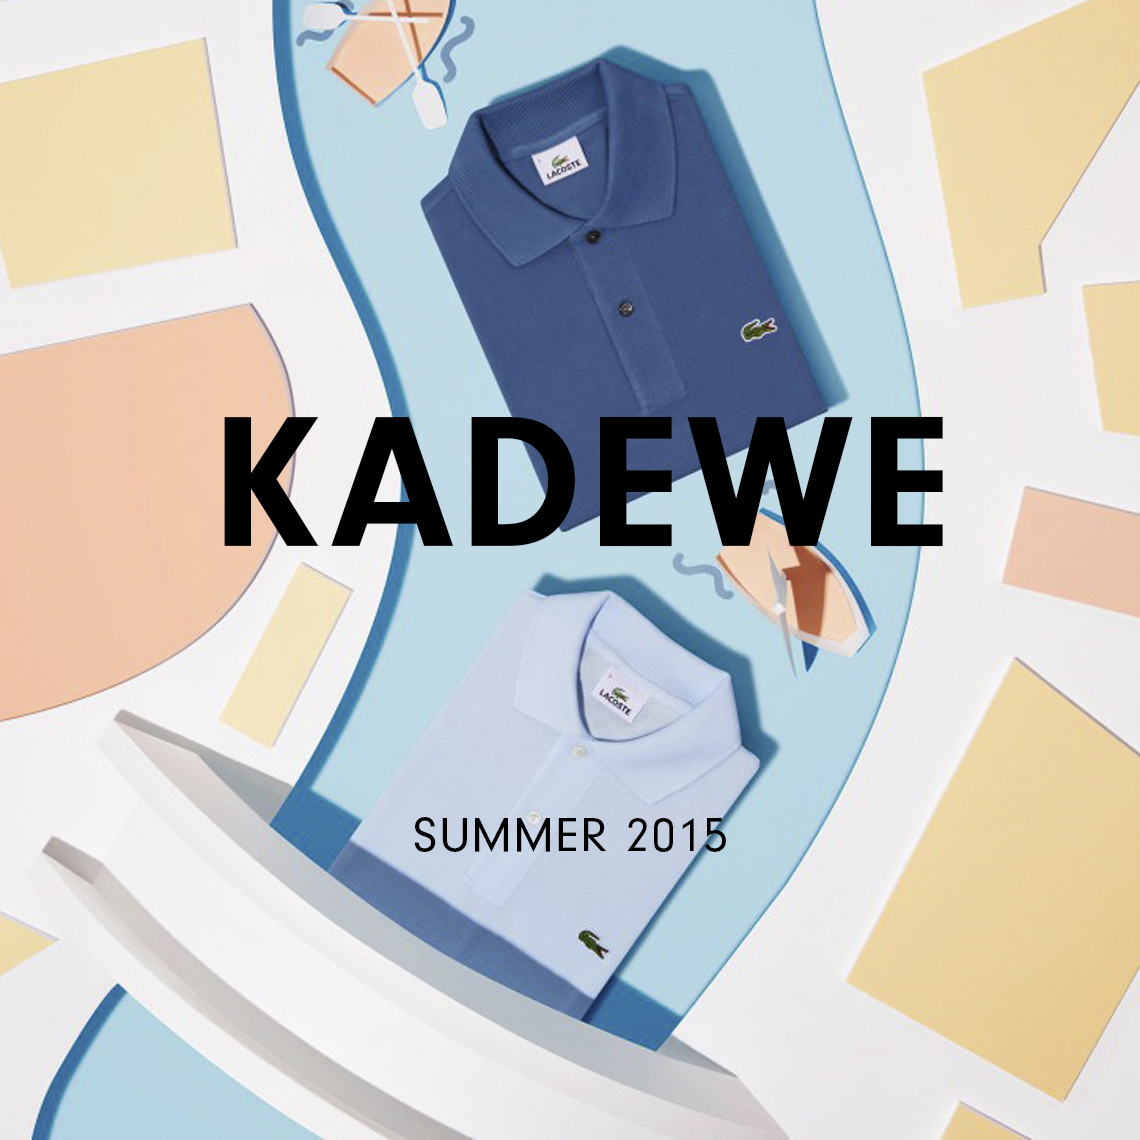 KaDeWe Summer 2015